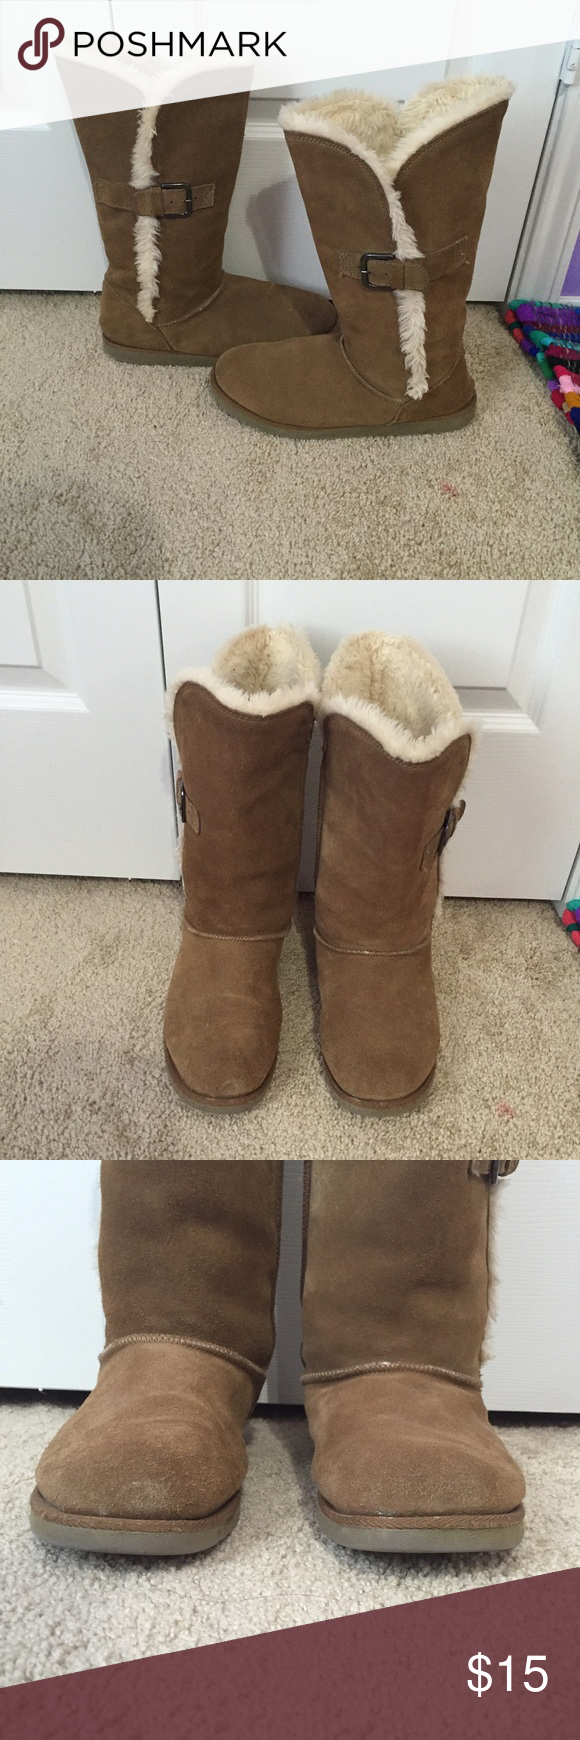 Winter fur boots Tan, cream colored fur, buckles on the side, size 9, and price is negotiable Shoes Winter & Rain Boots